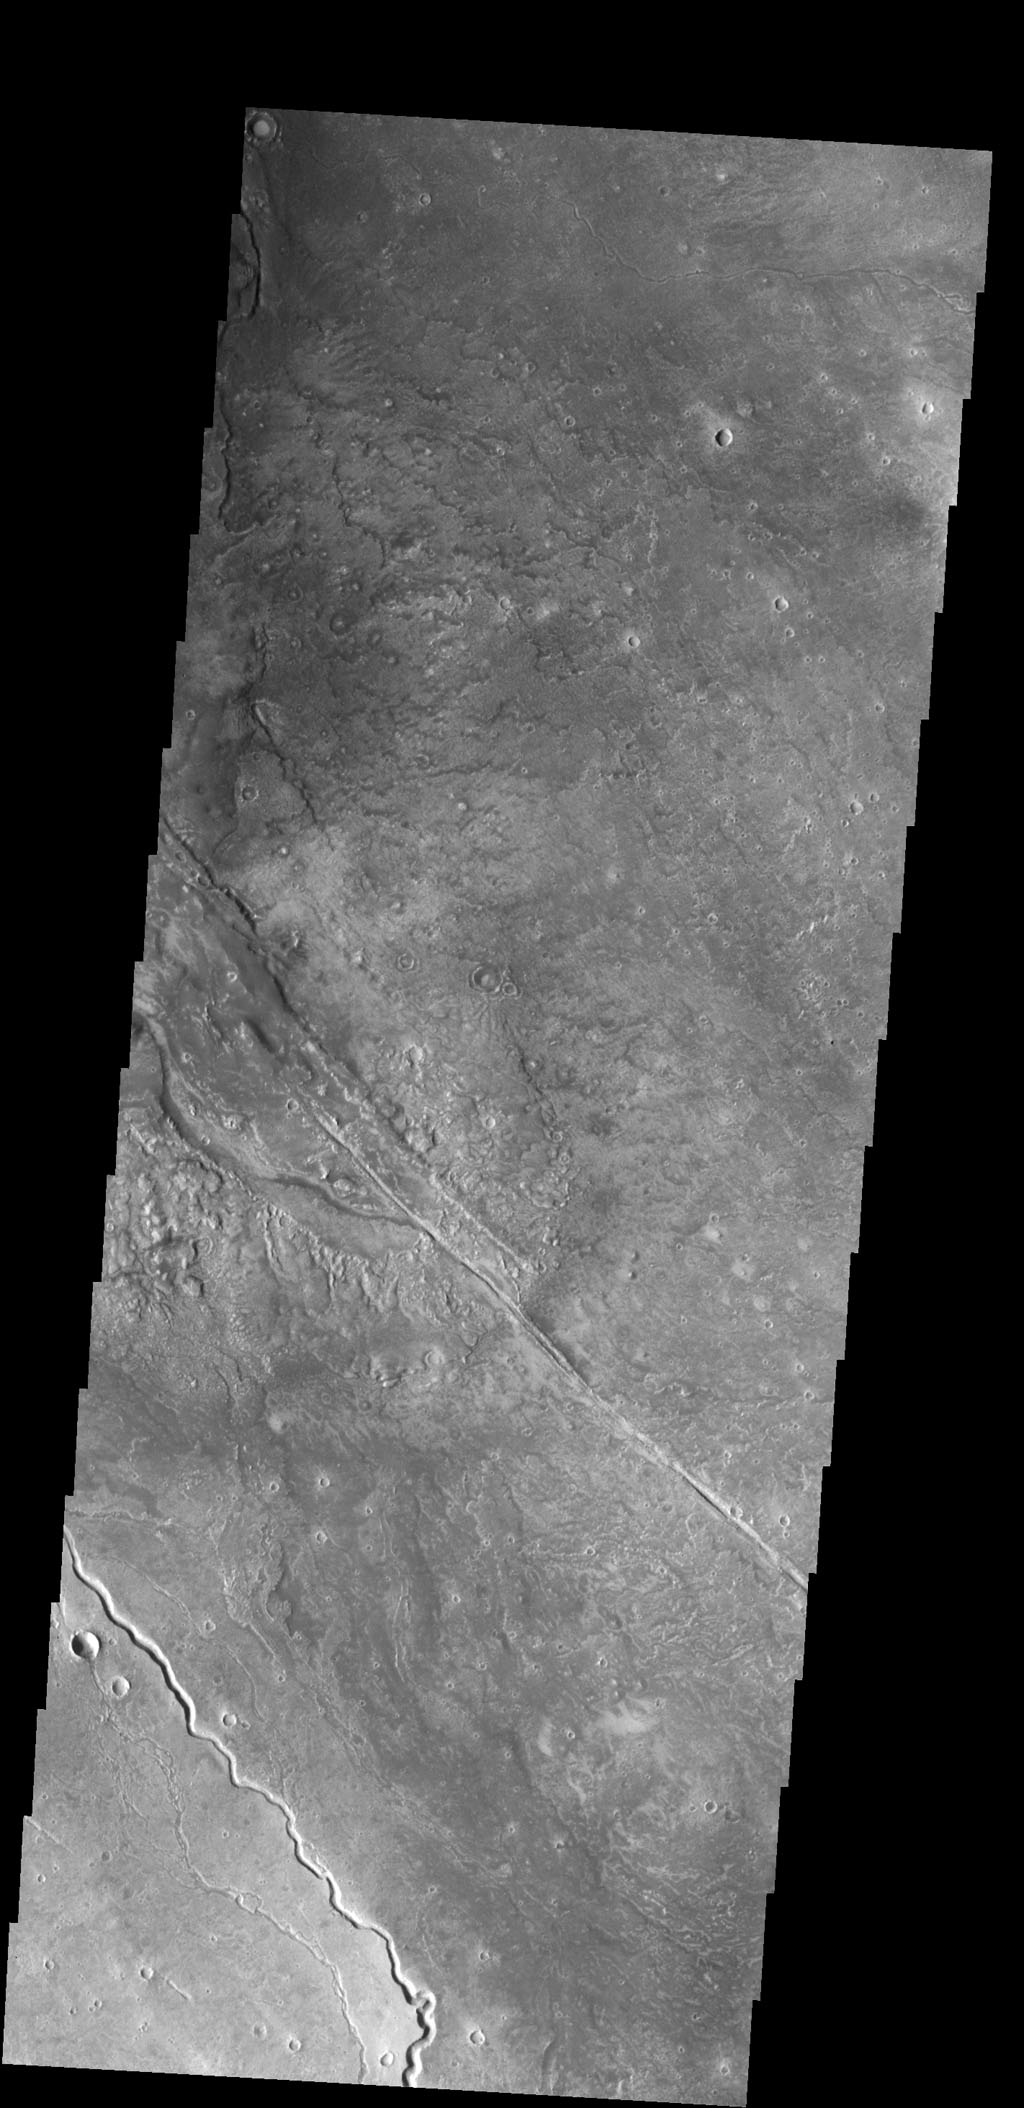 This image captured by NASA's 2001 Mars Odyssey spacecraft shows several of the channels located in the Elysium Mons volcanic complex. It is likely that these channels were formed by lava flow rather than water.